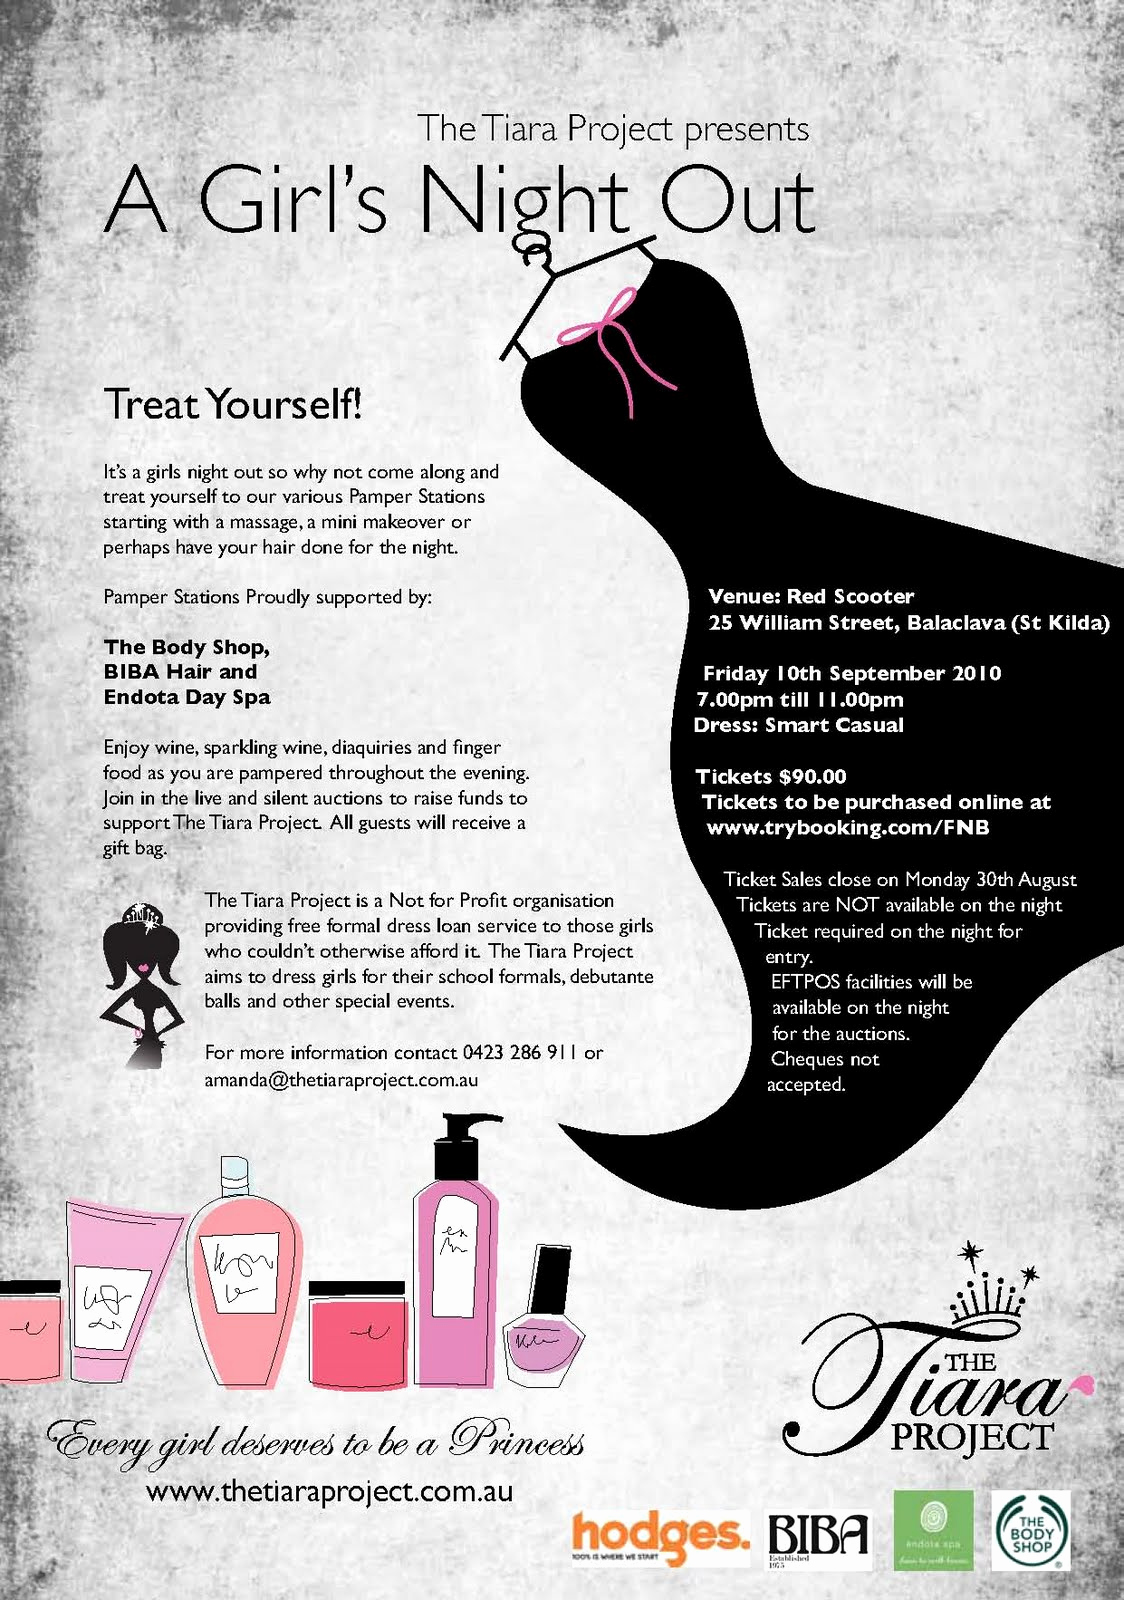 tiara project present girls night out